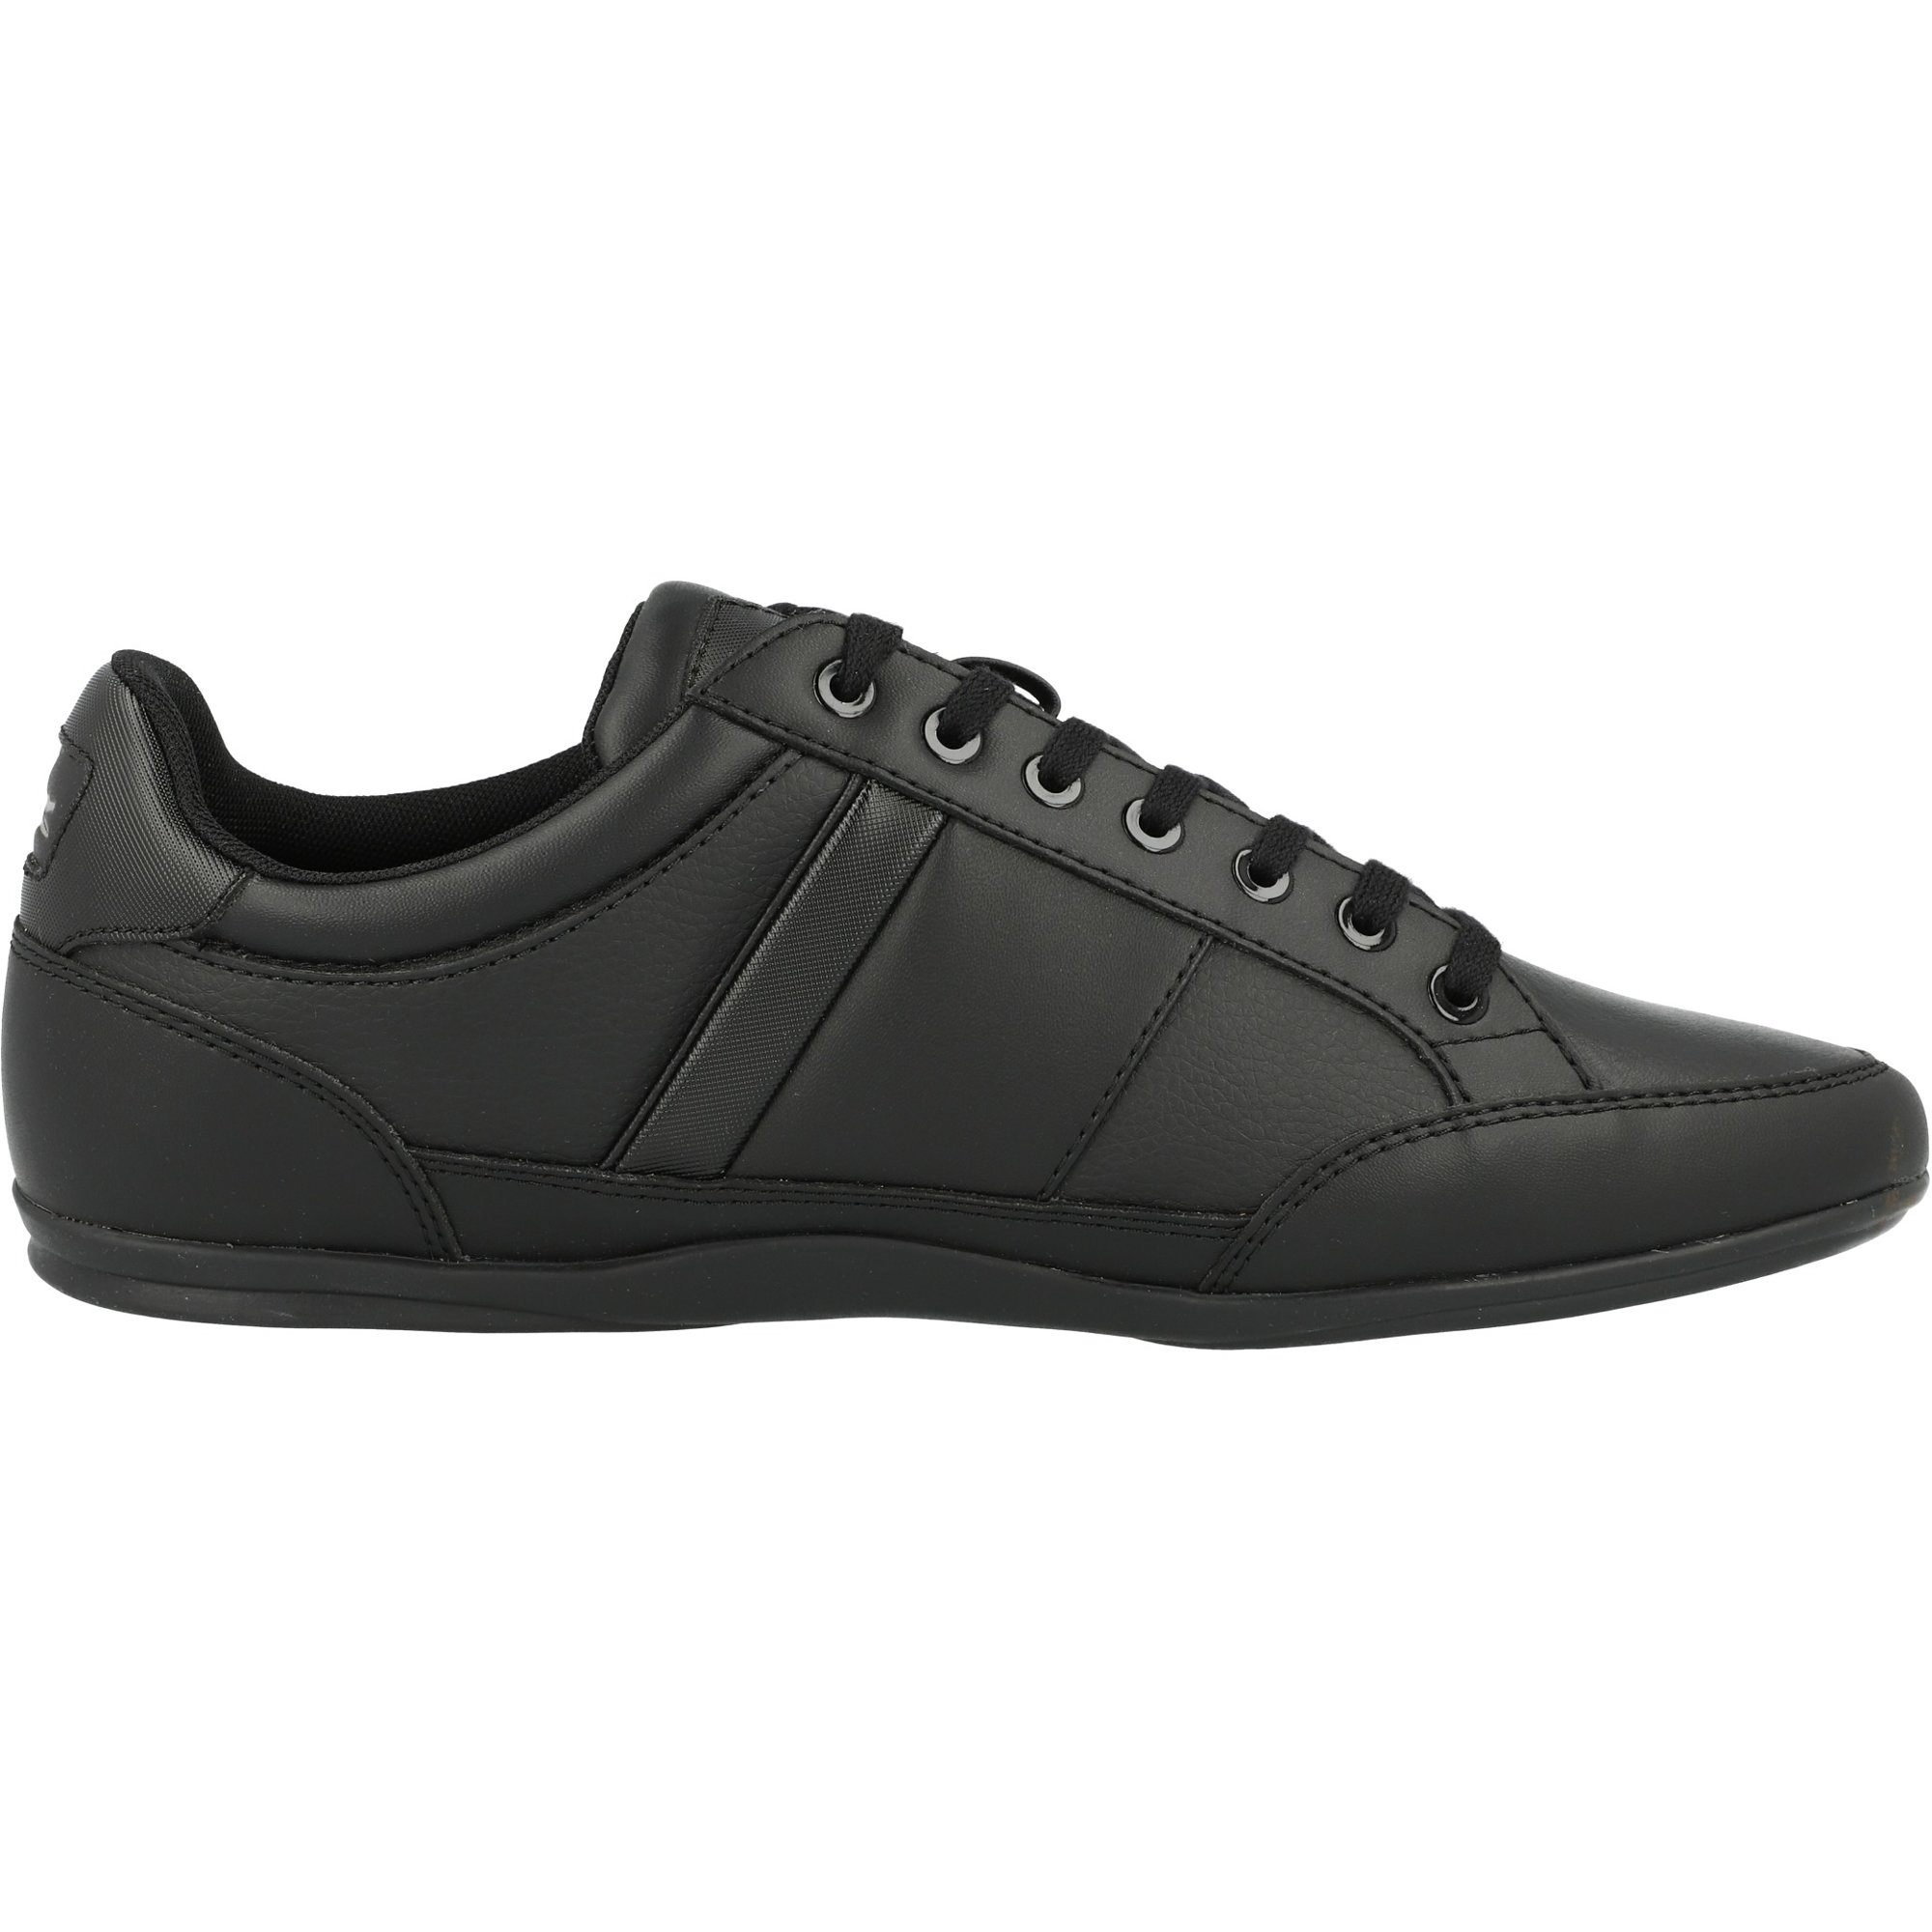 Lacoste Chaymon BL 1 Black Synthetic